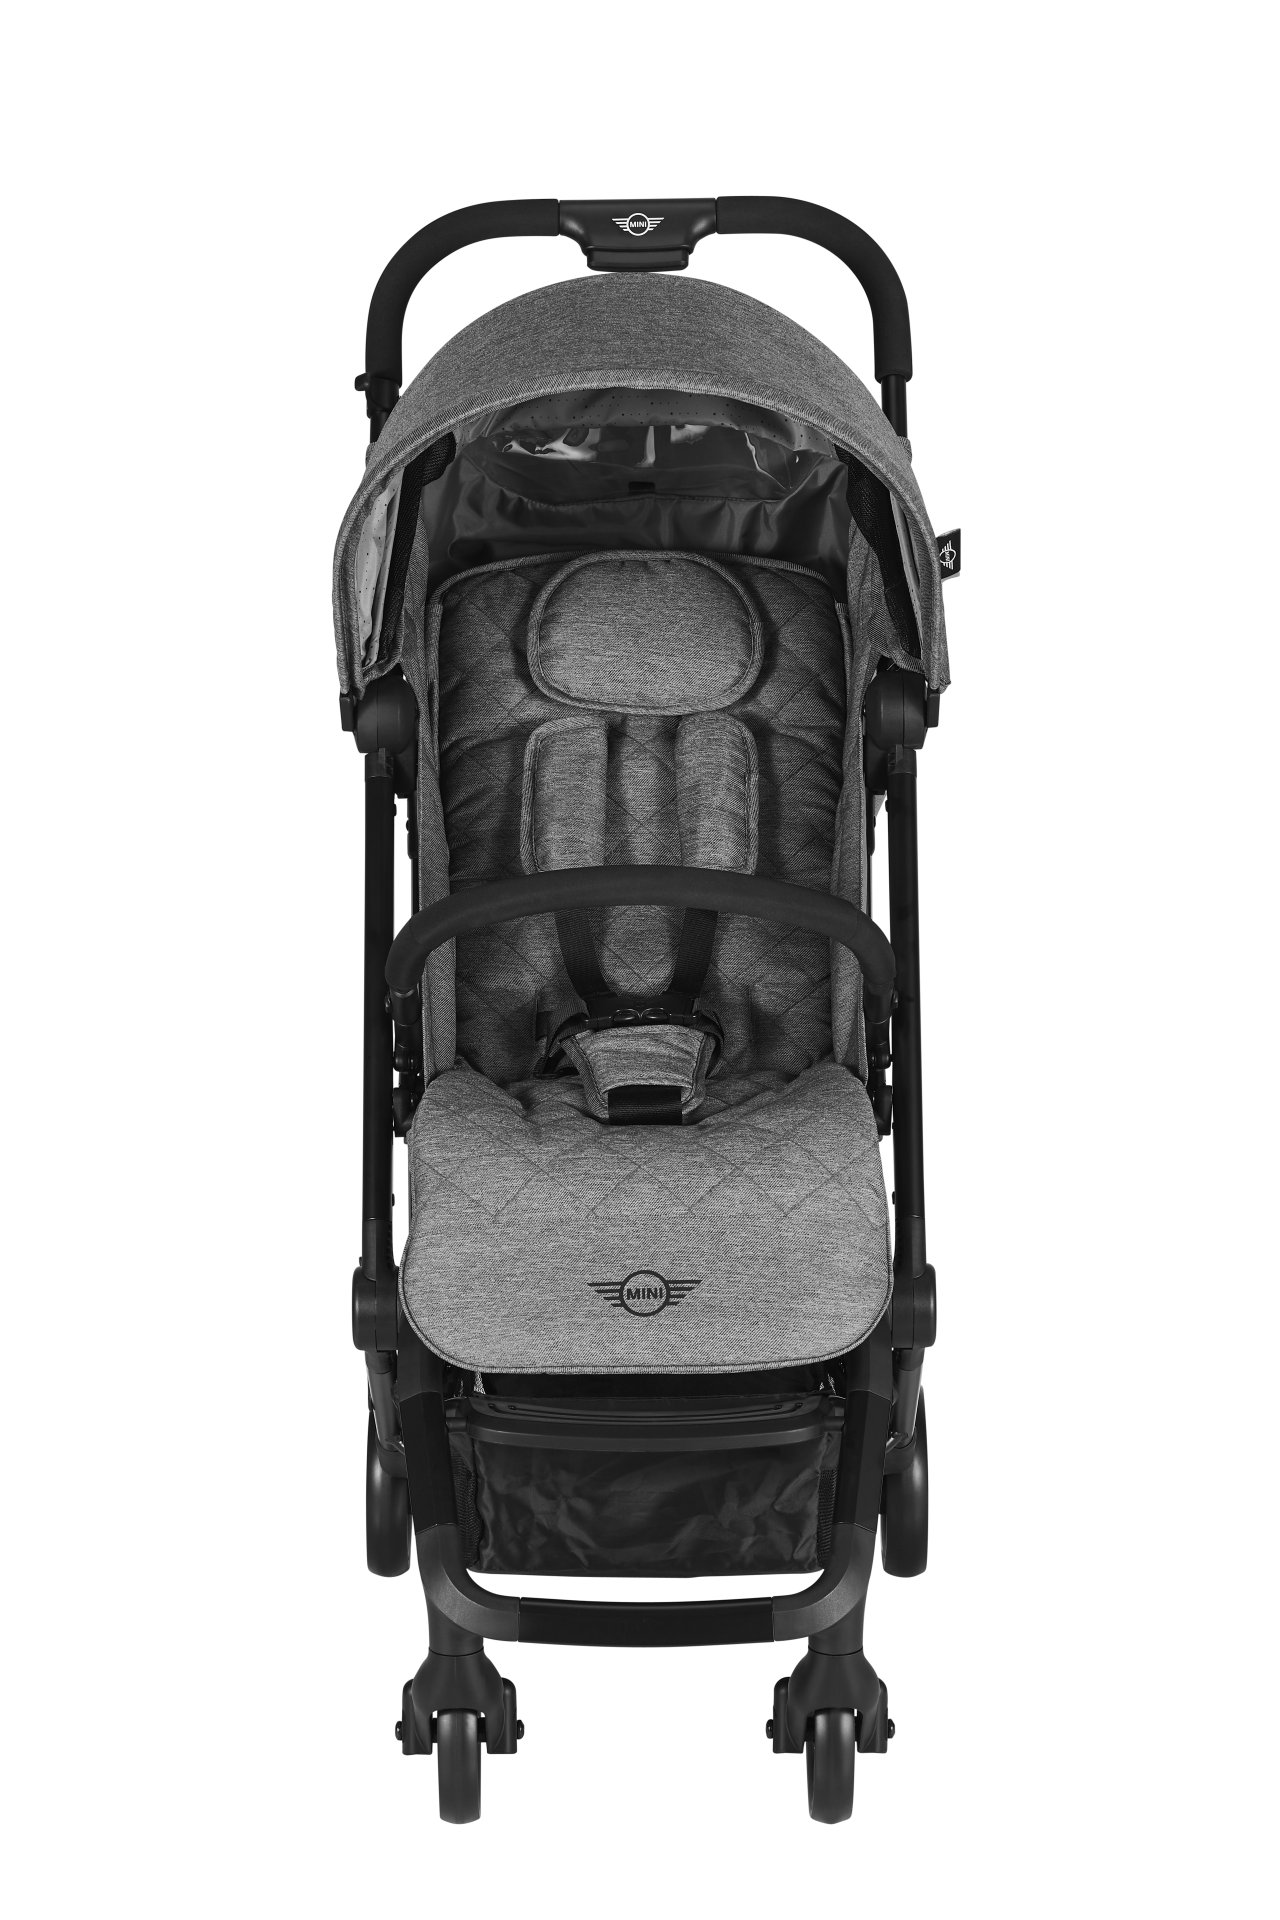 02df0663f8 ... MINI Buggy XS by Easywalker Soho Grey 2019 - large image 4